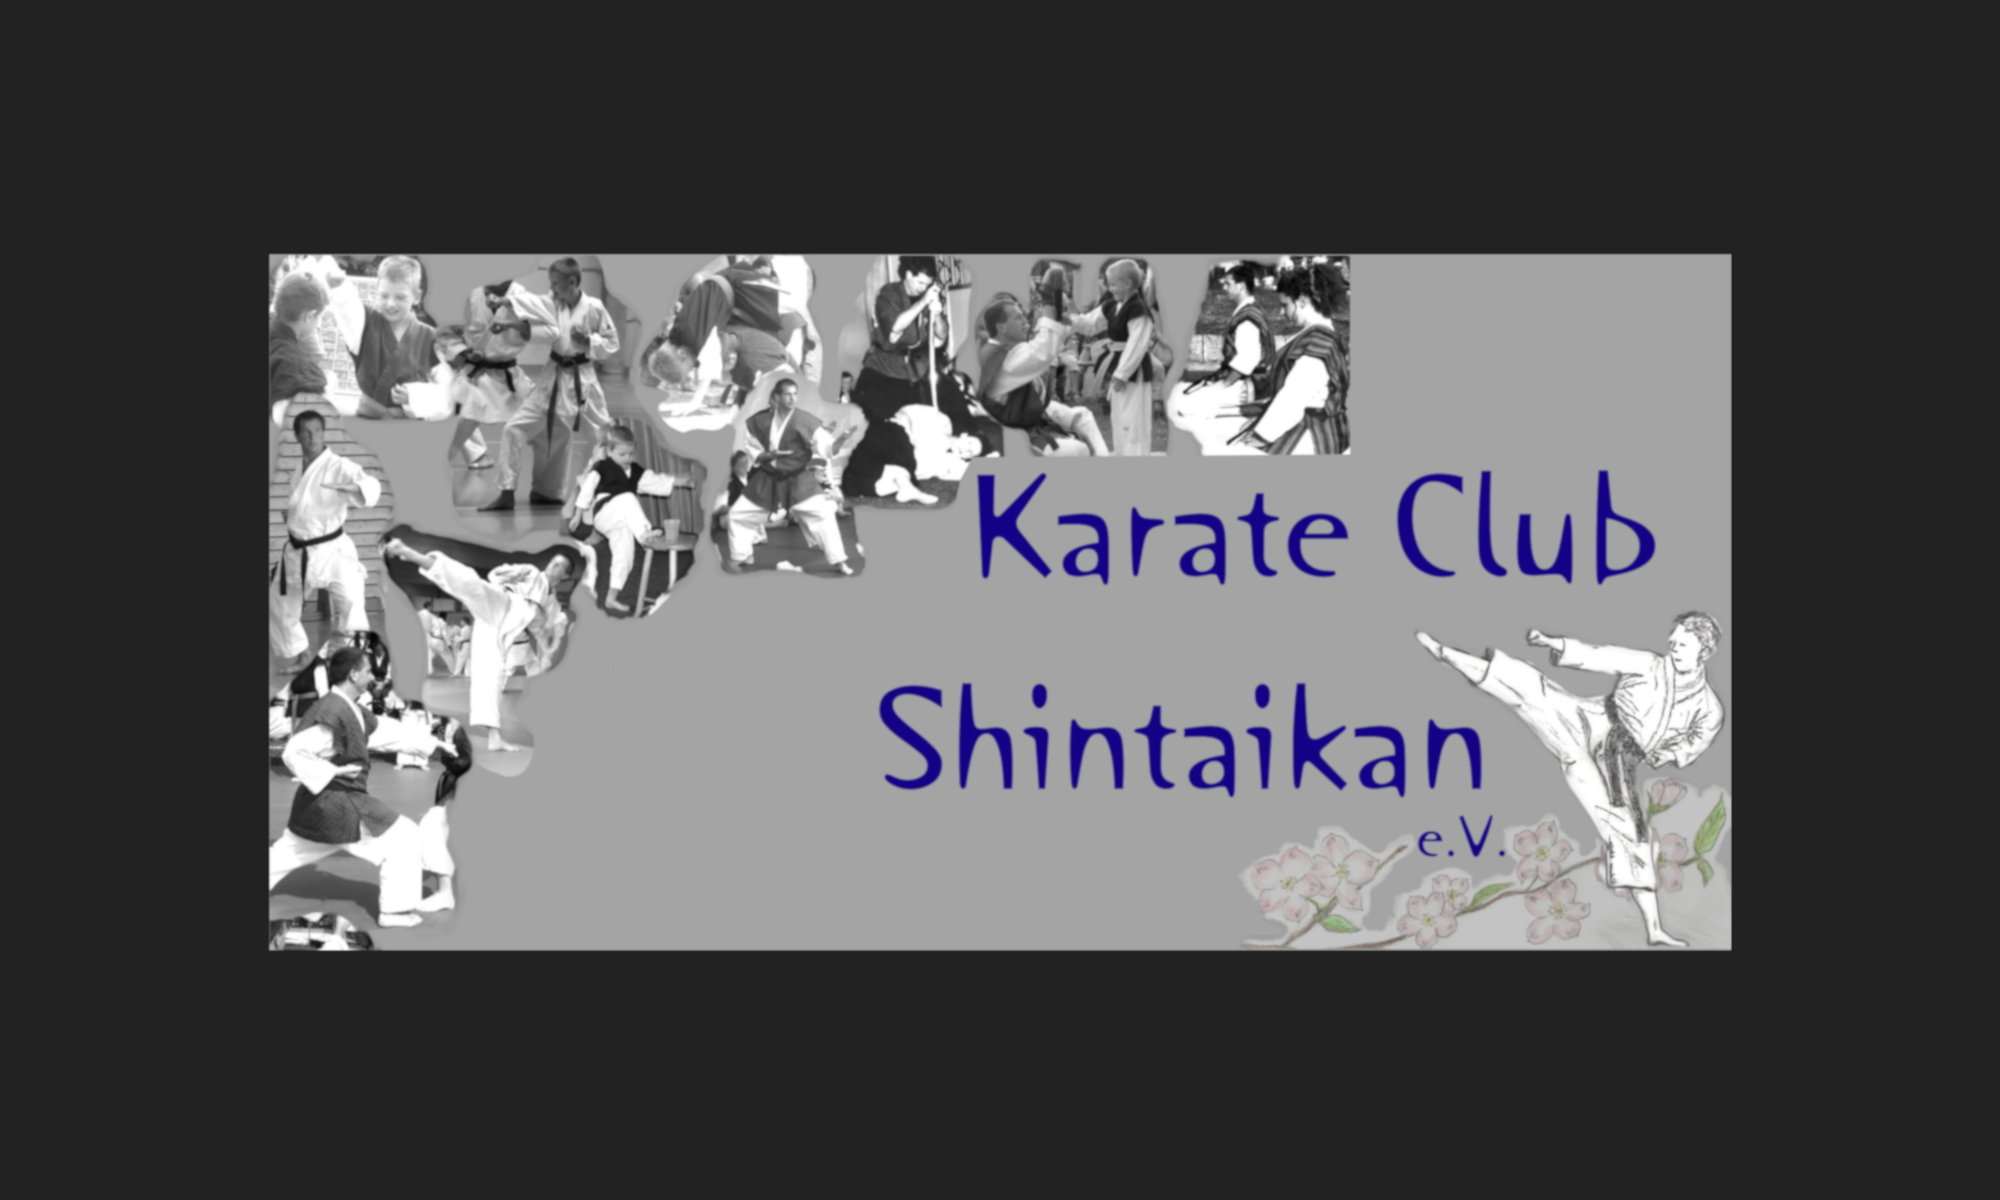 Karate Club Shintaikan e.V. Freiburg